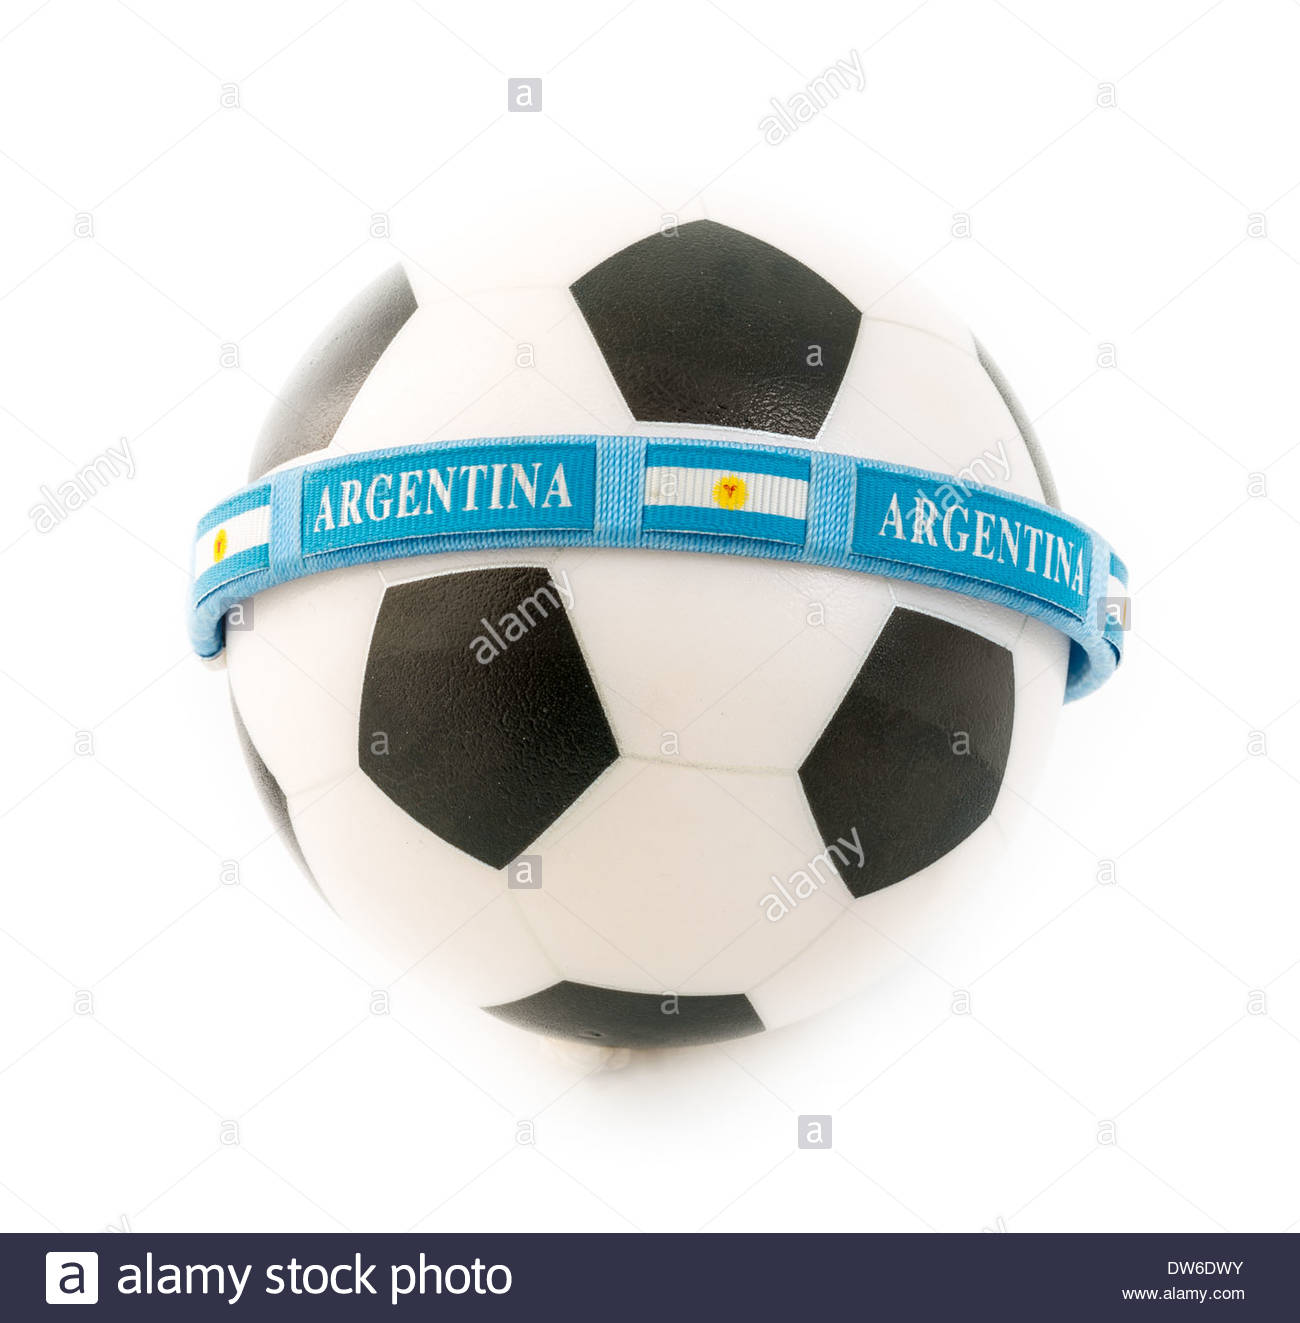 Concept of the major role played by Argentina in the International Soccer Arena - Stock Image